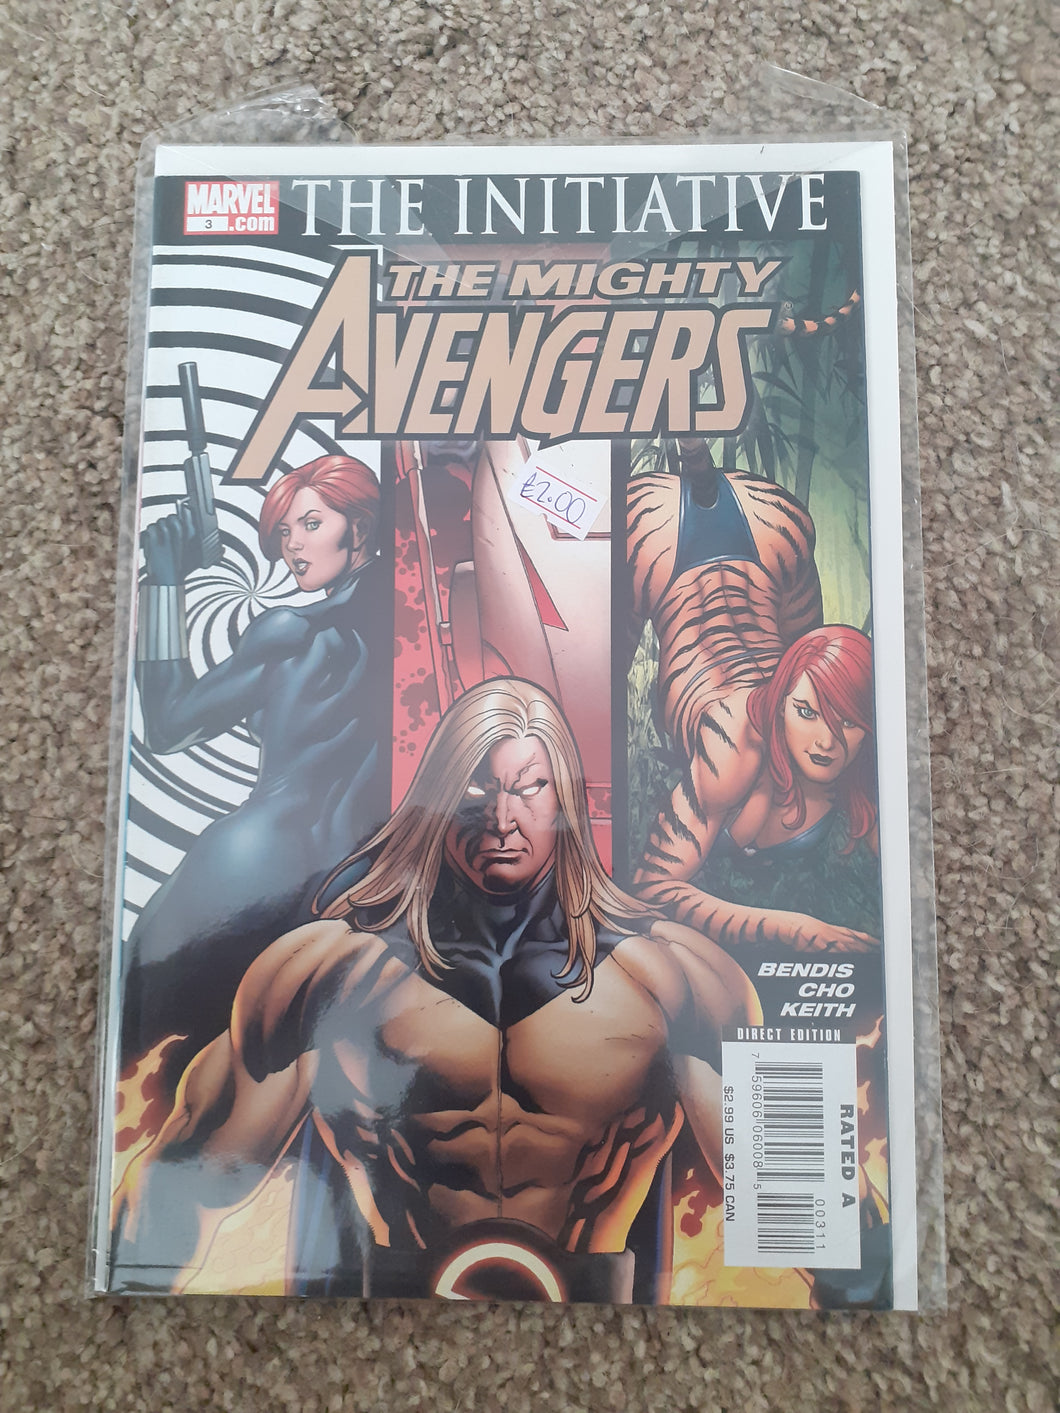 The Mighty Avengers: The Initiative #3